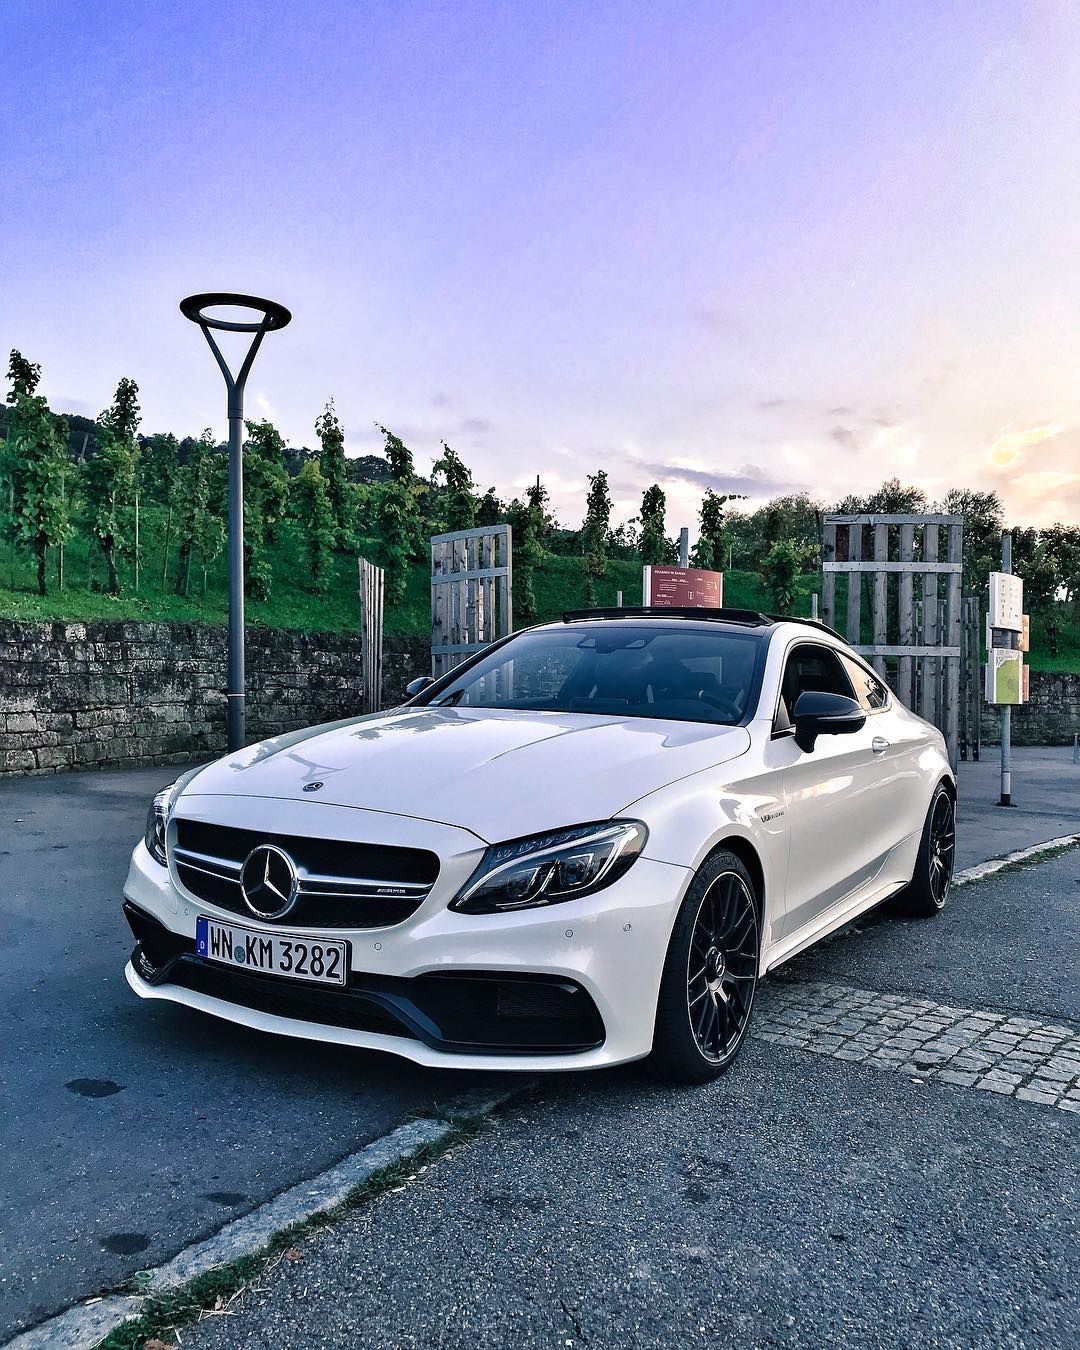 Produktplatzierung / Product Placement My 2018 AMG C63 S